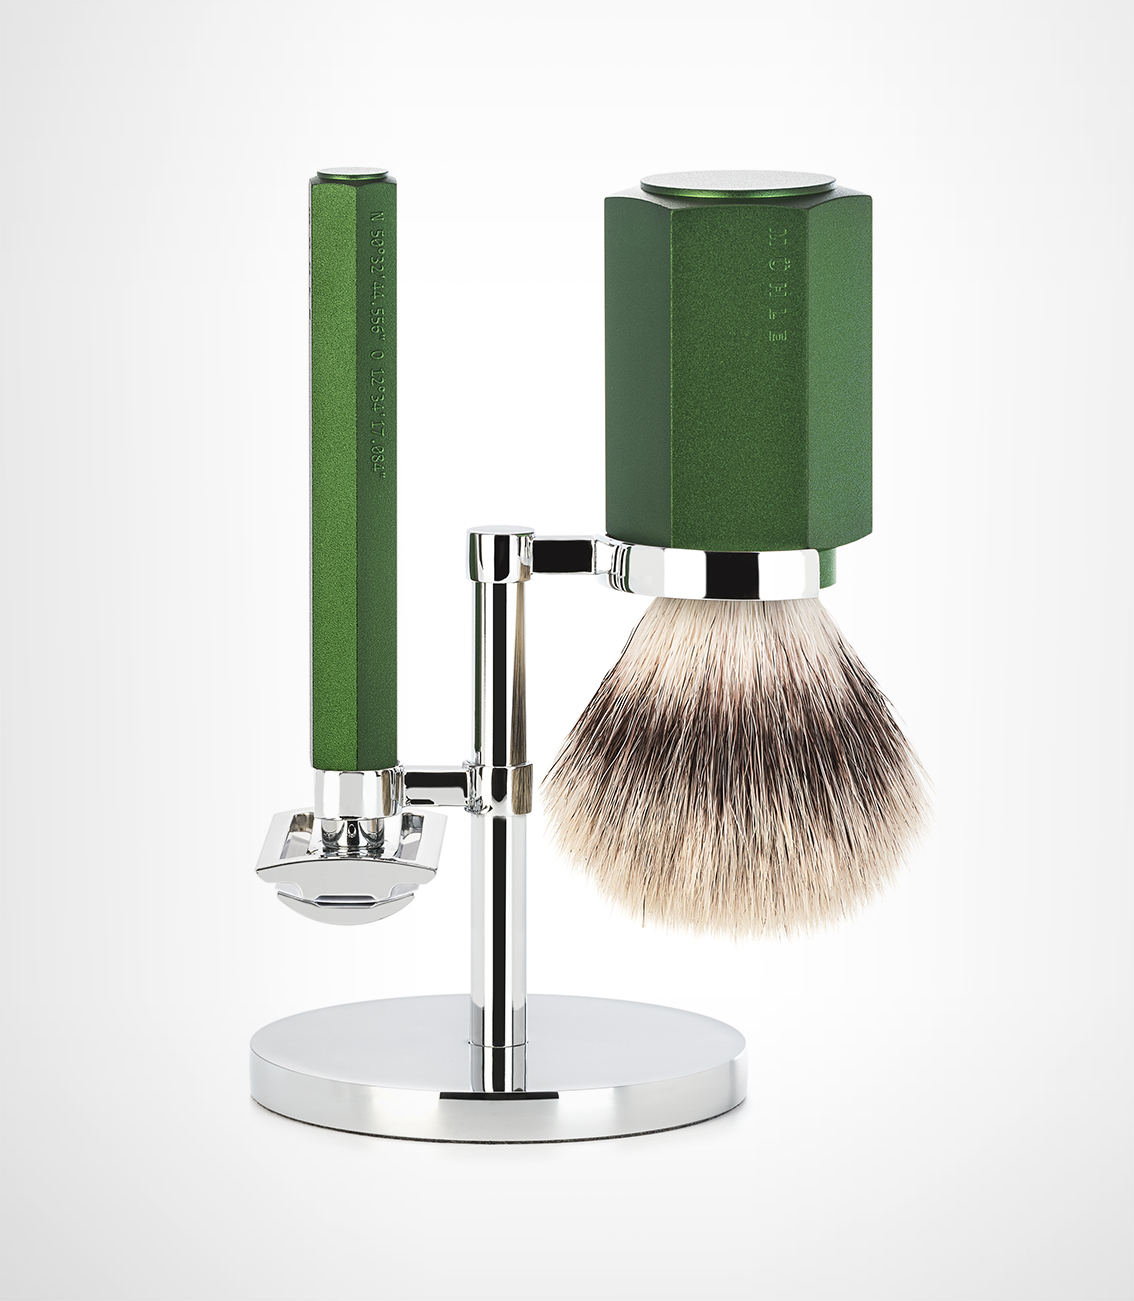 Curator: elevate into an enjoyable design experience from your dull shaving routine. - This shaving set is designed by Berlin designer Mark Braun and is one of the finest shaving implement. It is a Red Dot Award winner for Product Design.